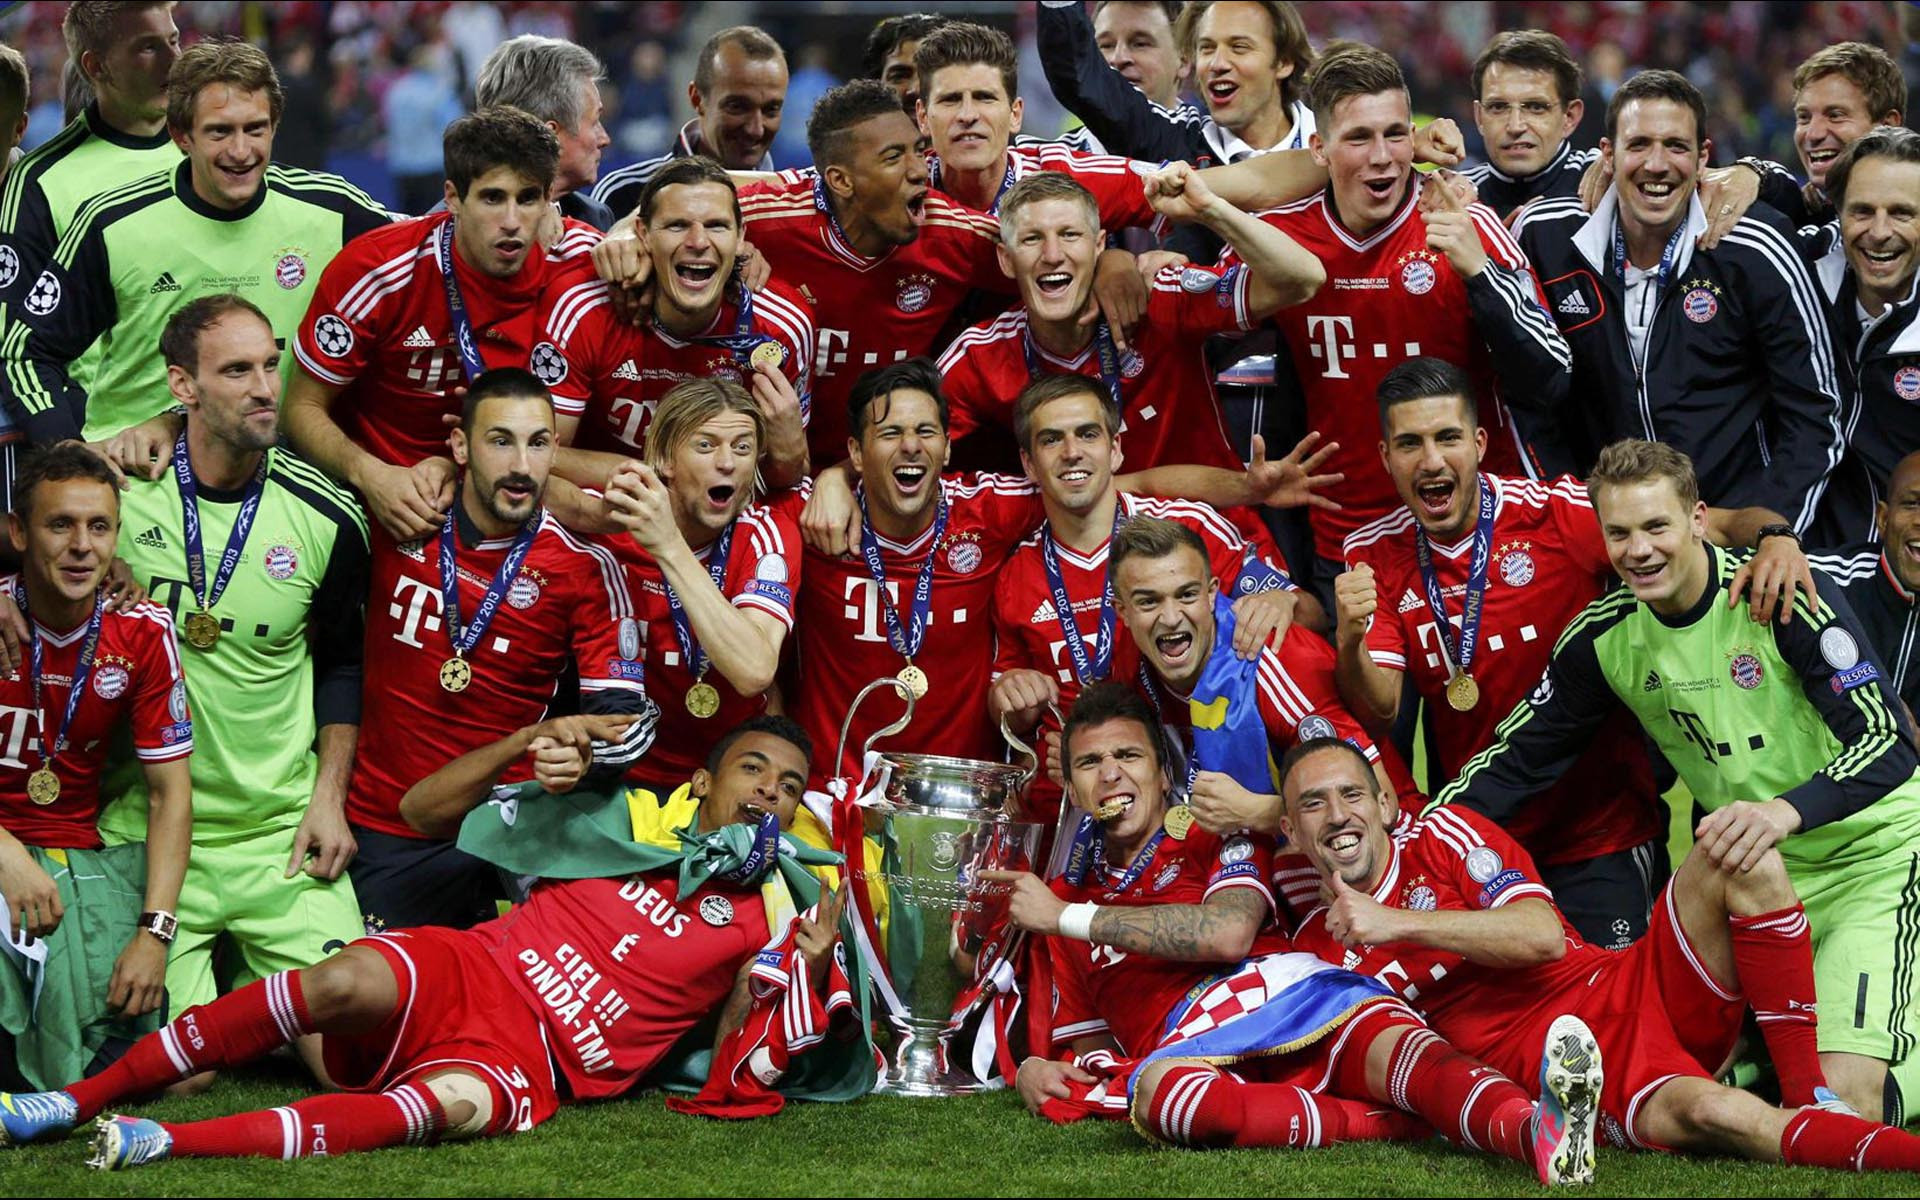 No Bundesliga title yet for Bayern Munich